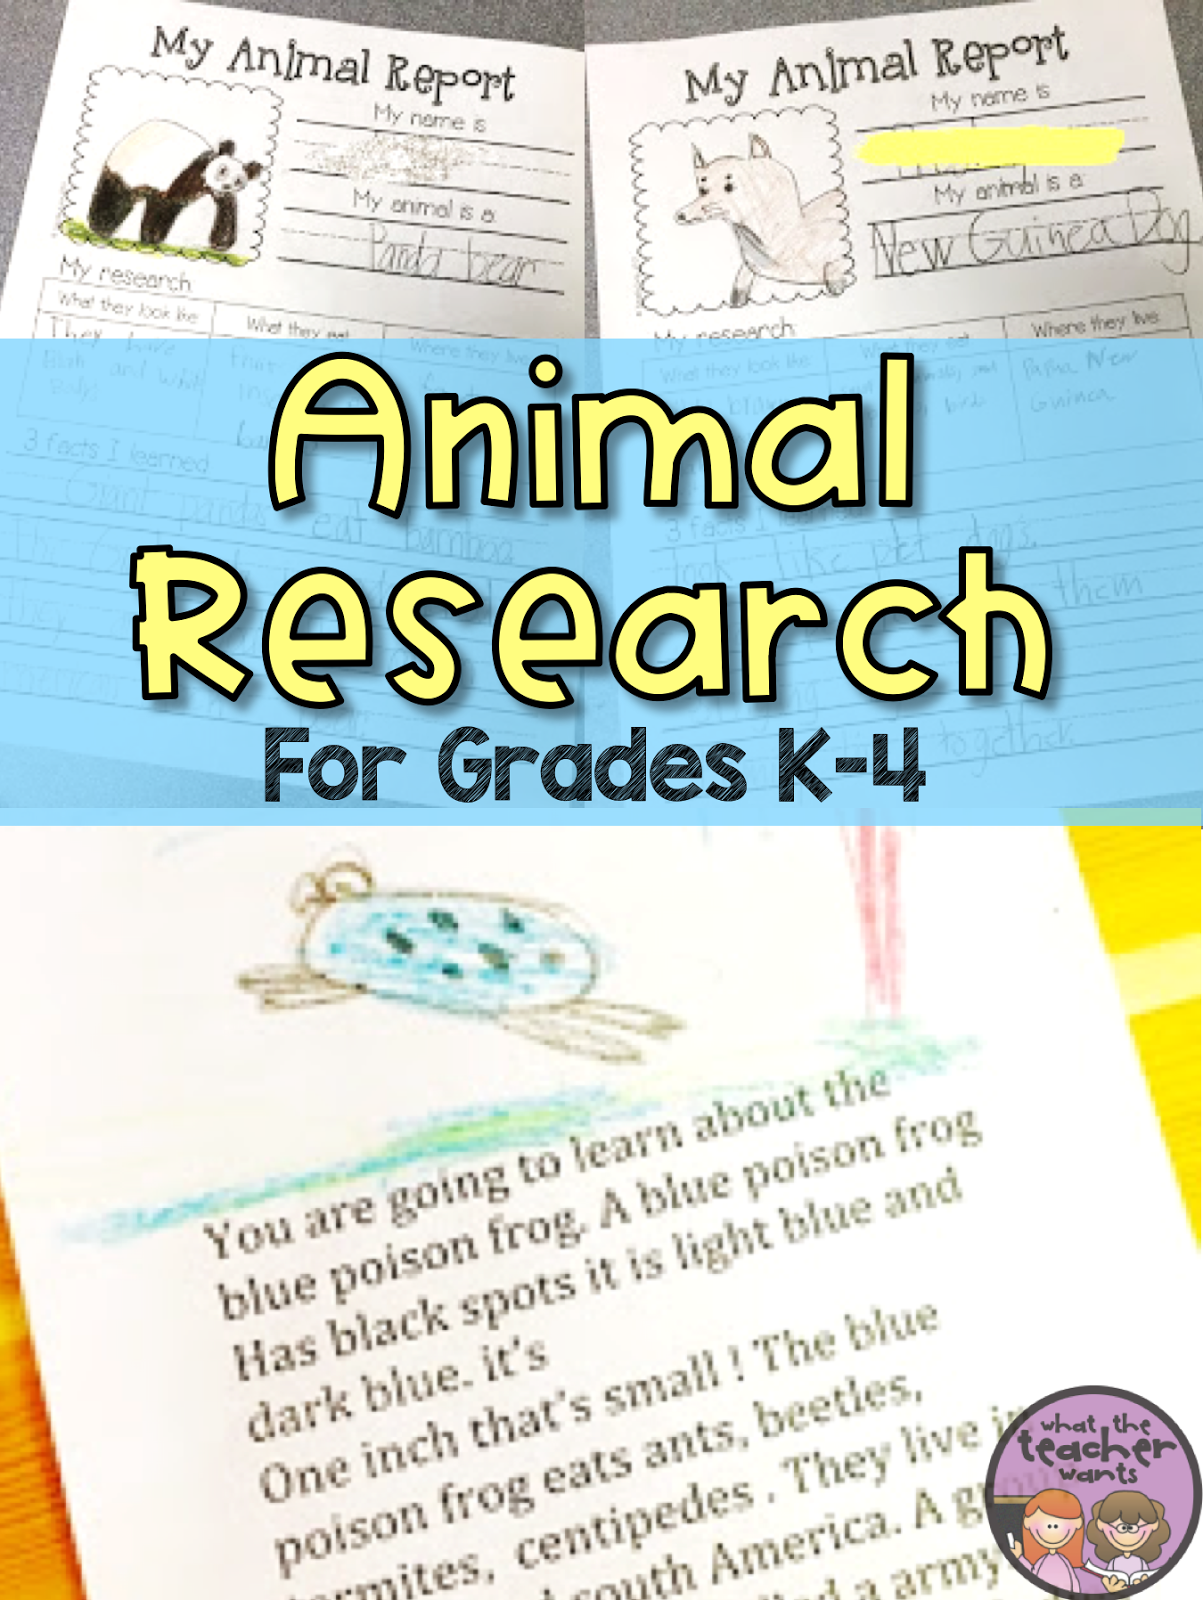 Animal reports are a fun way to get young students excited about doing research. This post shows how I differentiate my animal research for grades K-4.